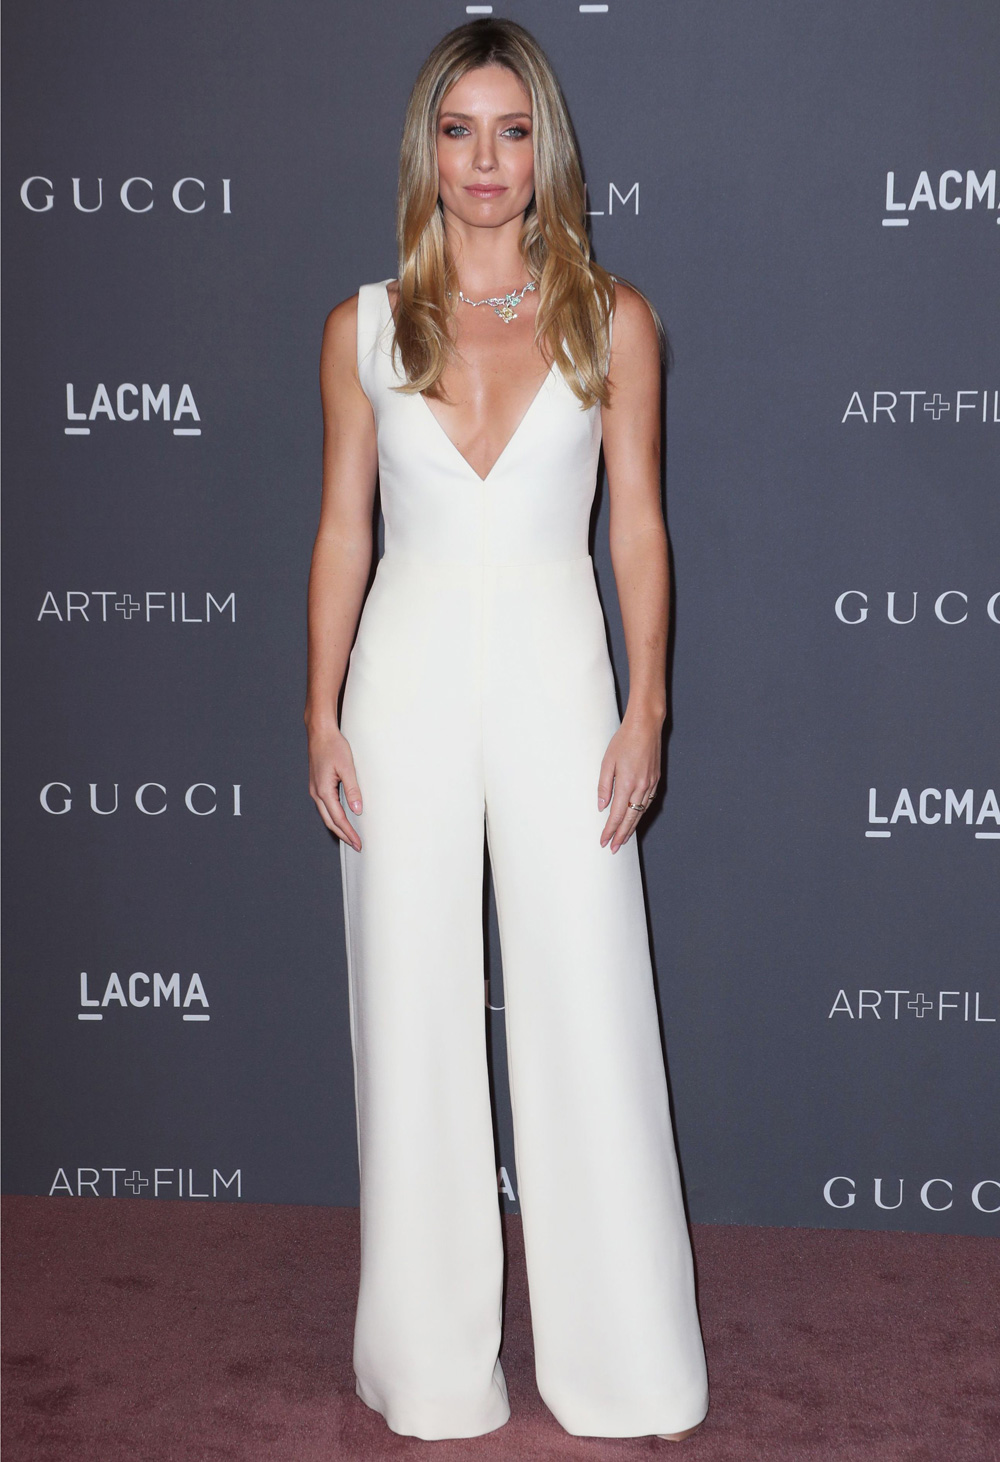 Annabelle Wallis In Dior At The Lacma Art And Film Gala About Her